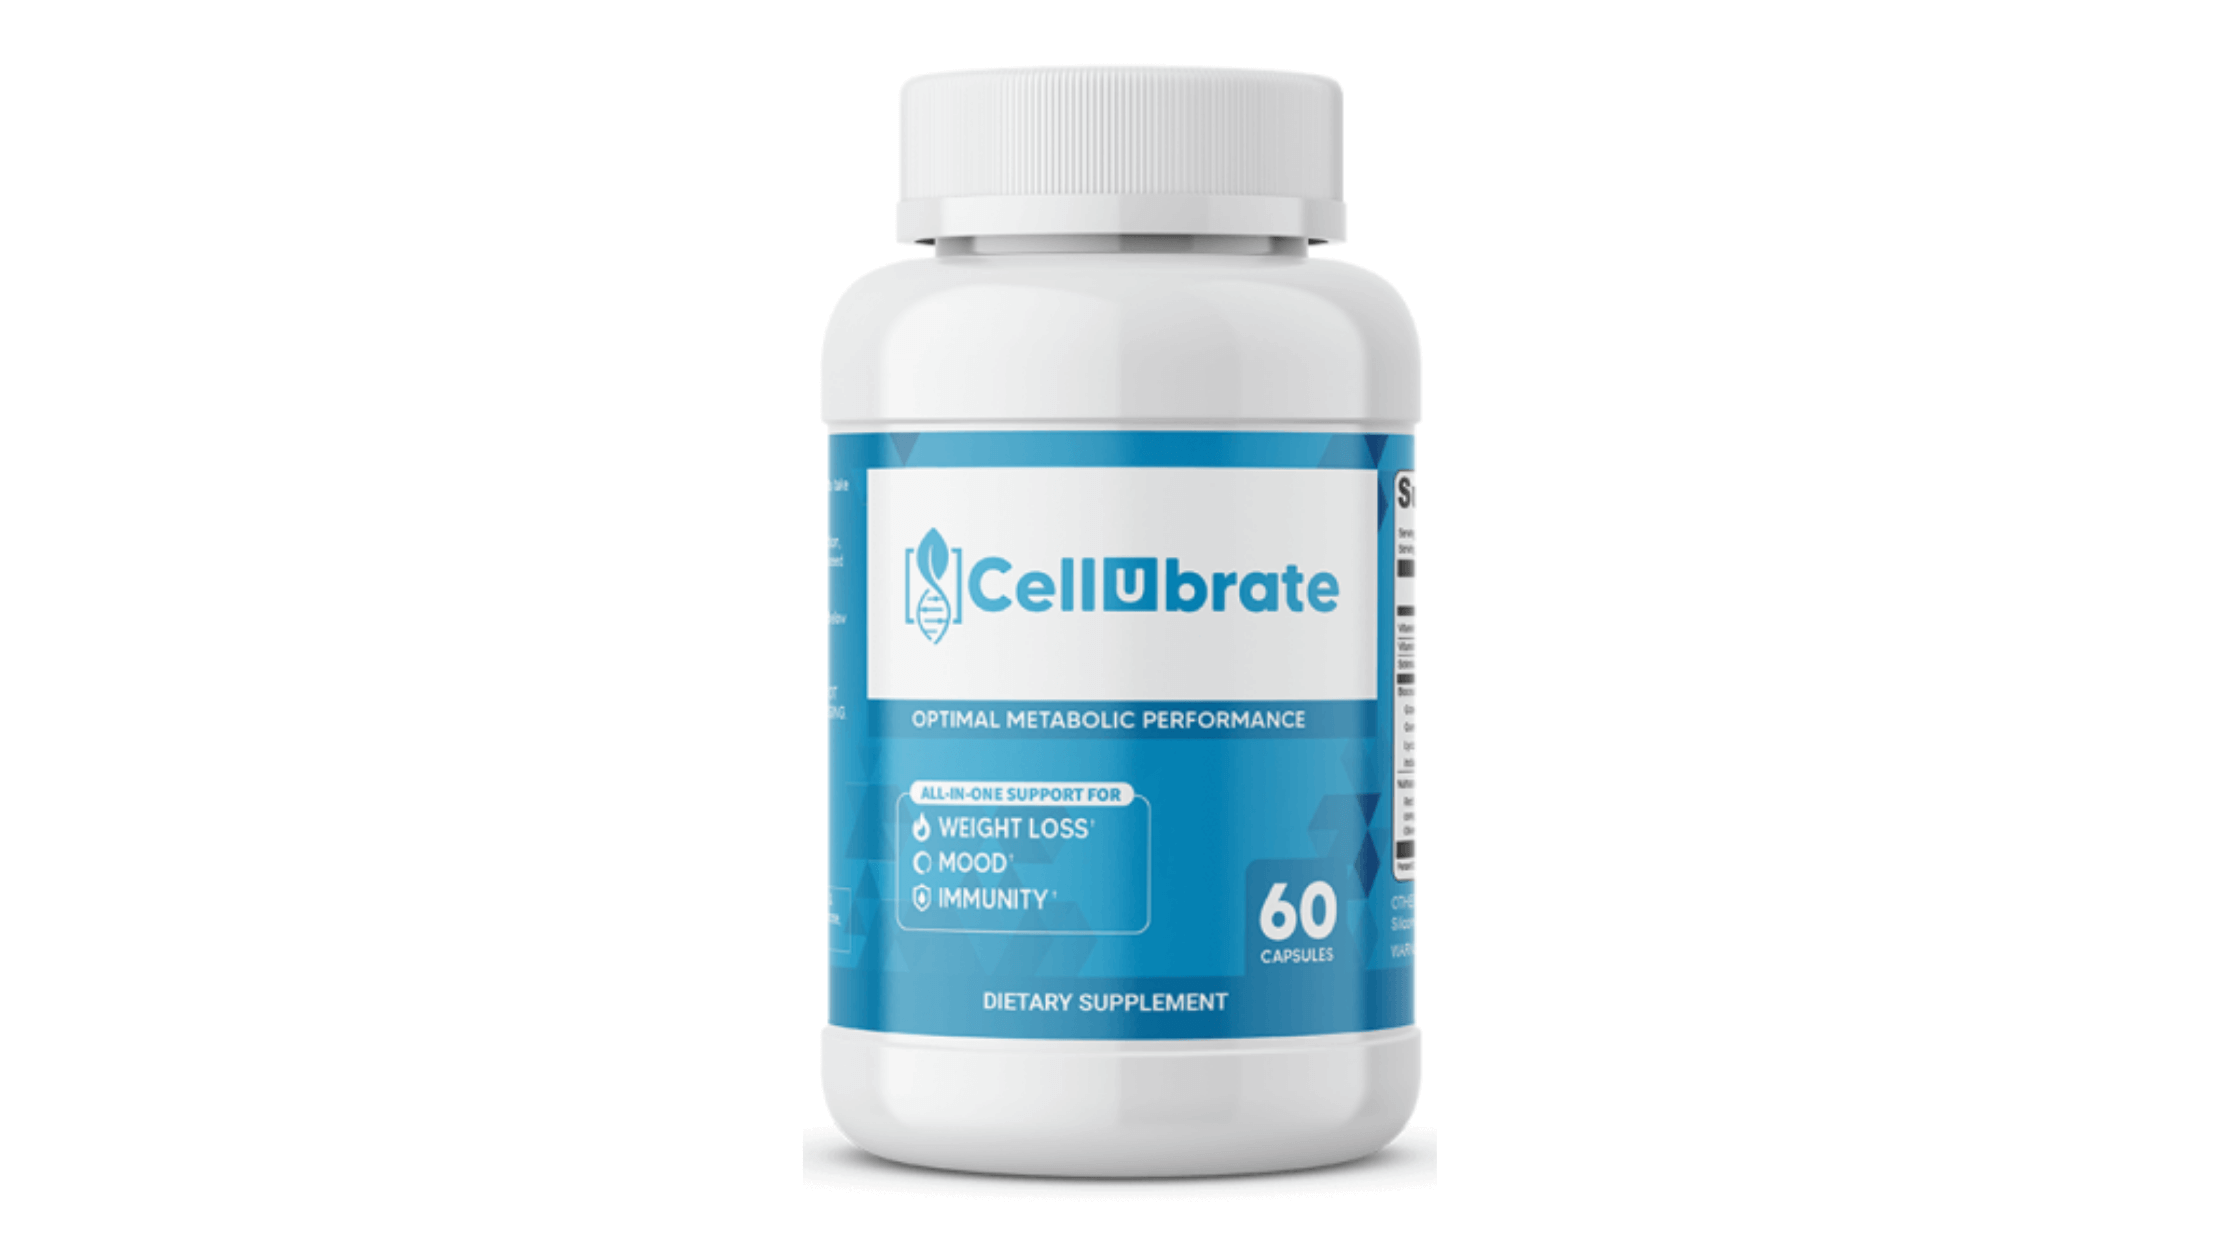 Cellubrate Reviews